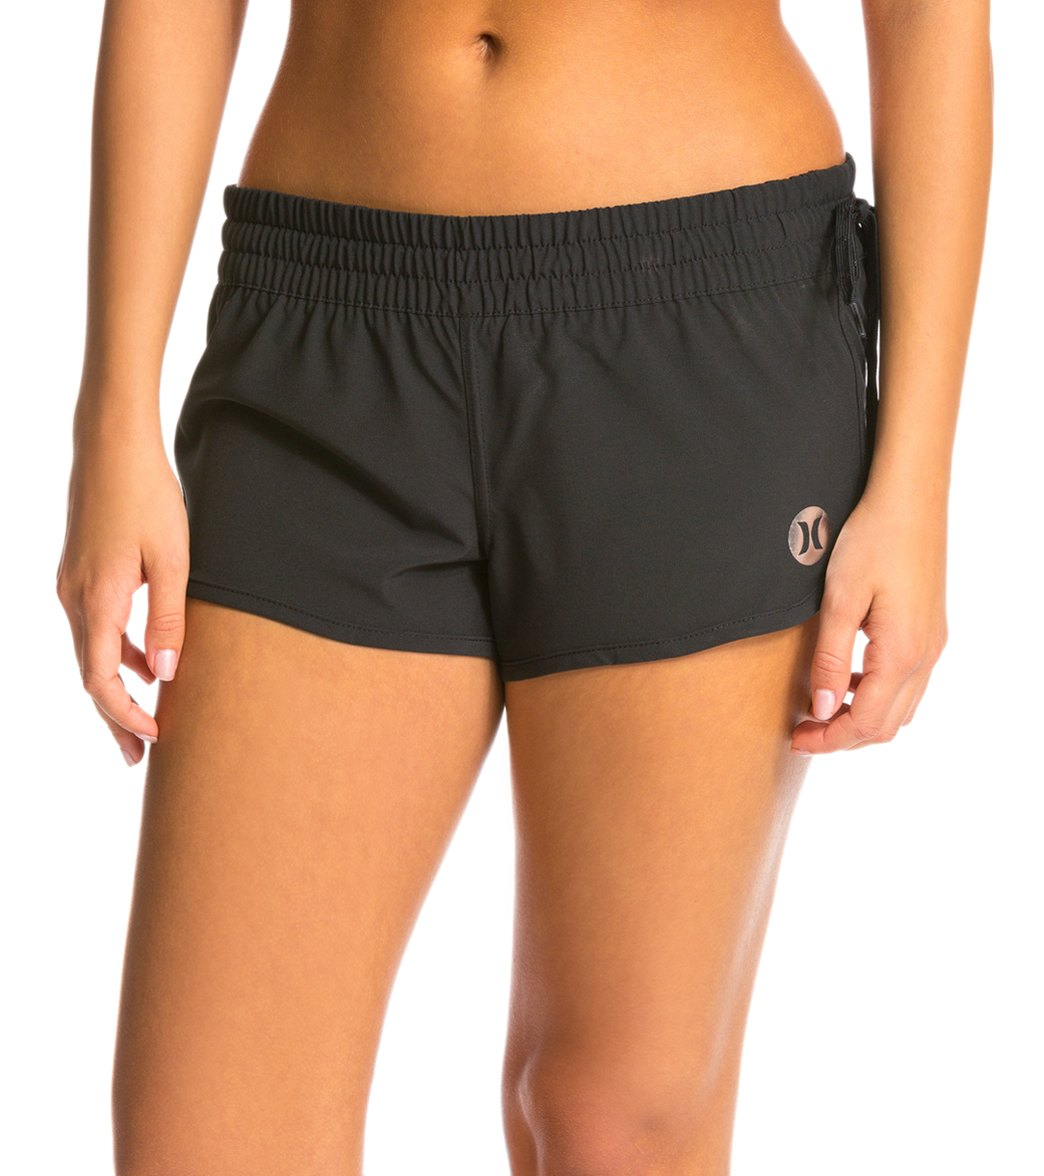 New ROKA Sports Women39s Sim Pro Swim Shorts At SwimOutletcom  Free